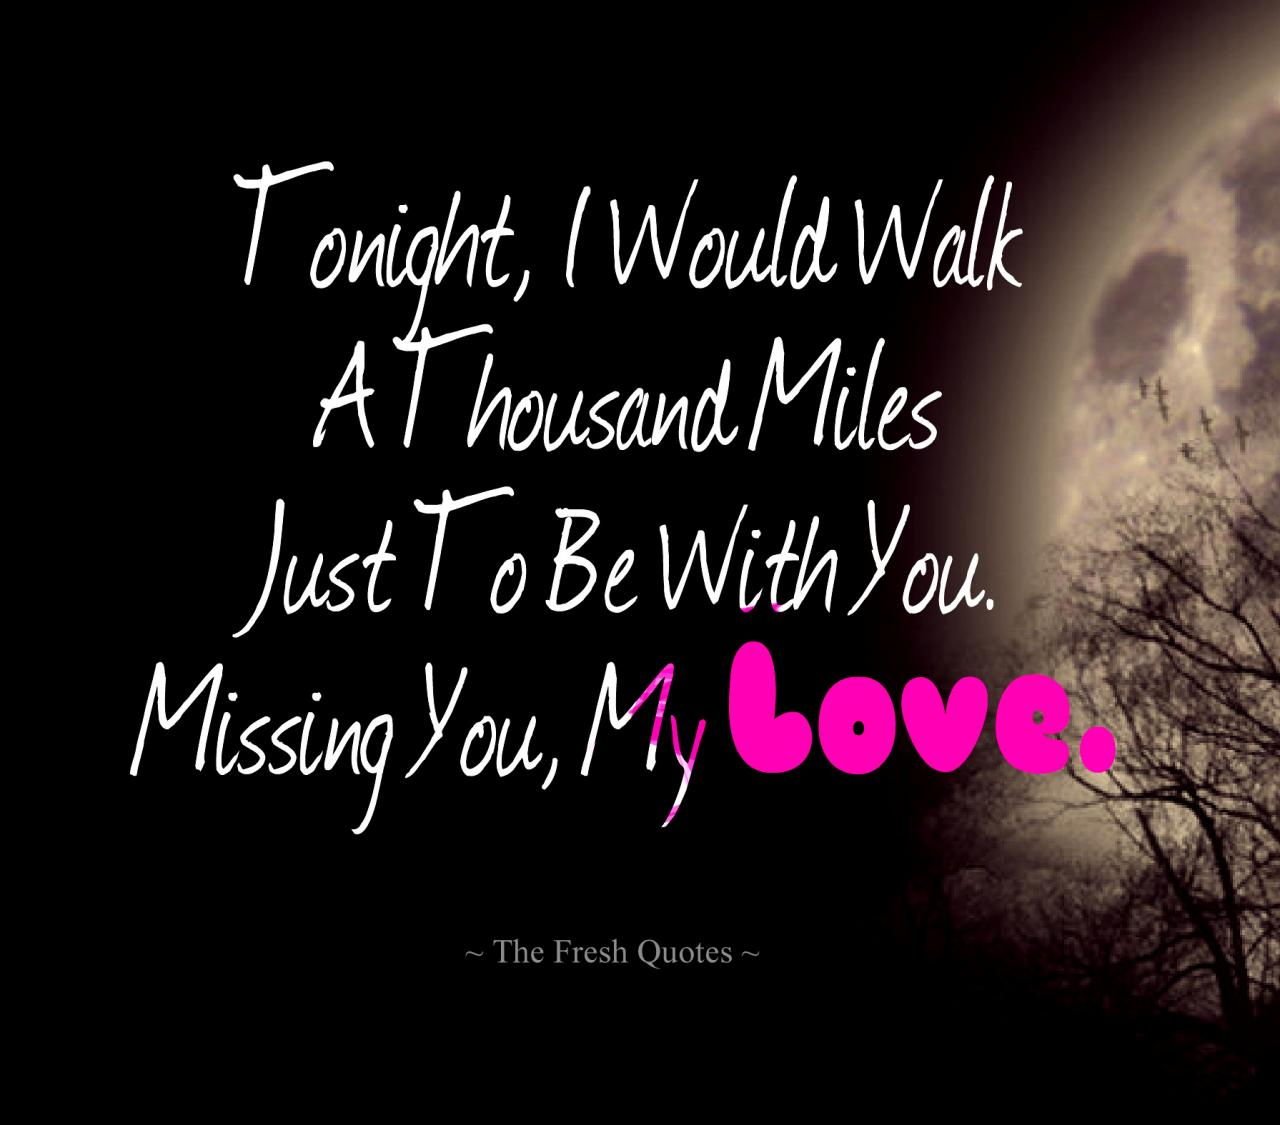 Heart Touching Collection Of Best Romantic Good Night Love You Quotes Send Or Share Good Night Love You Quotes And Sayings